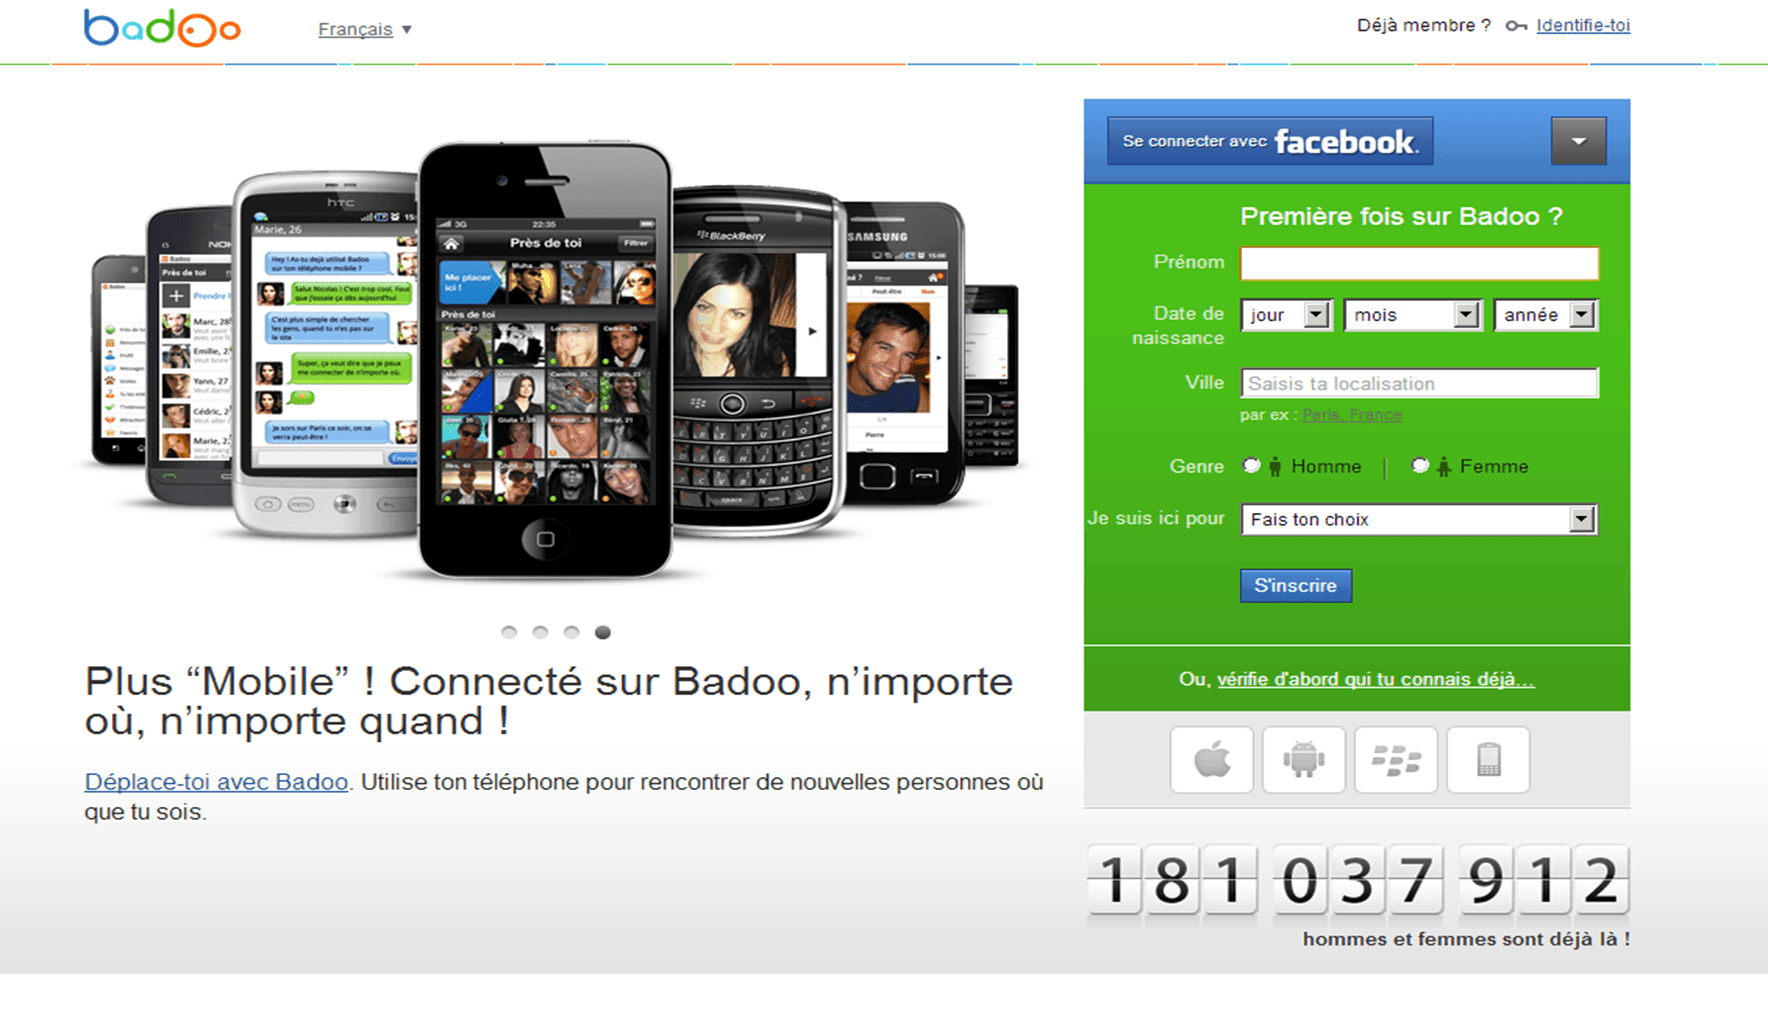 Site de rencontre badoo test